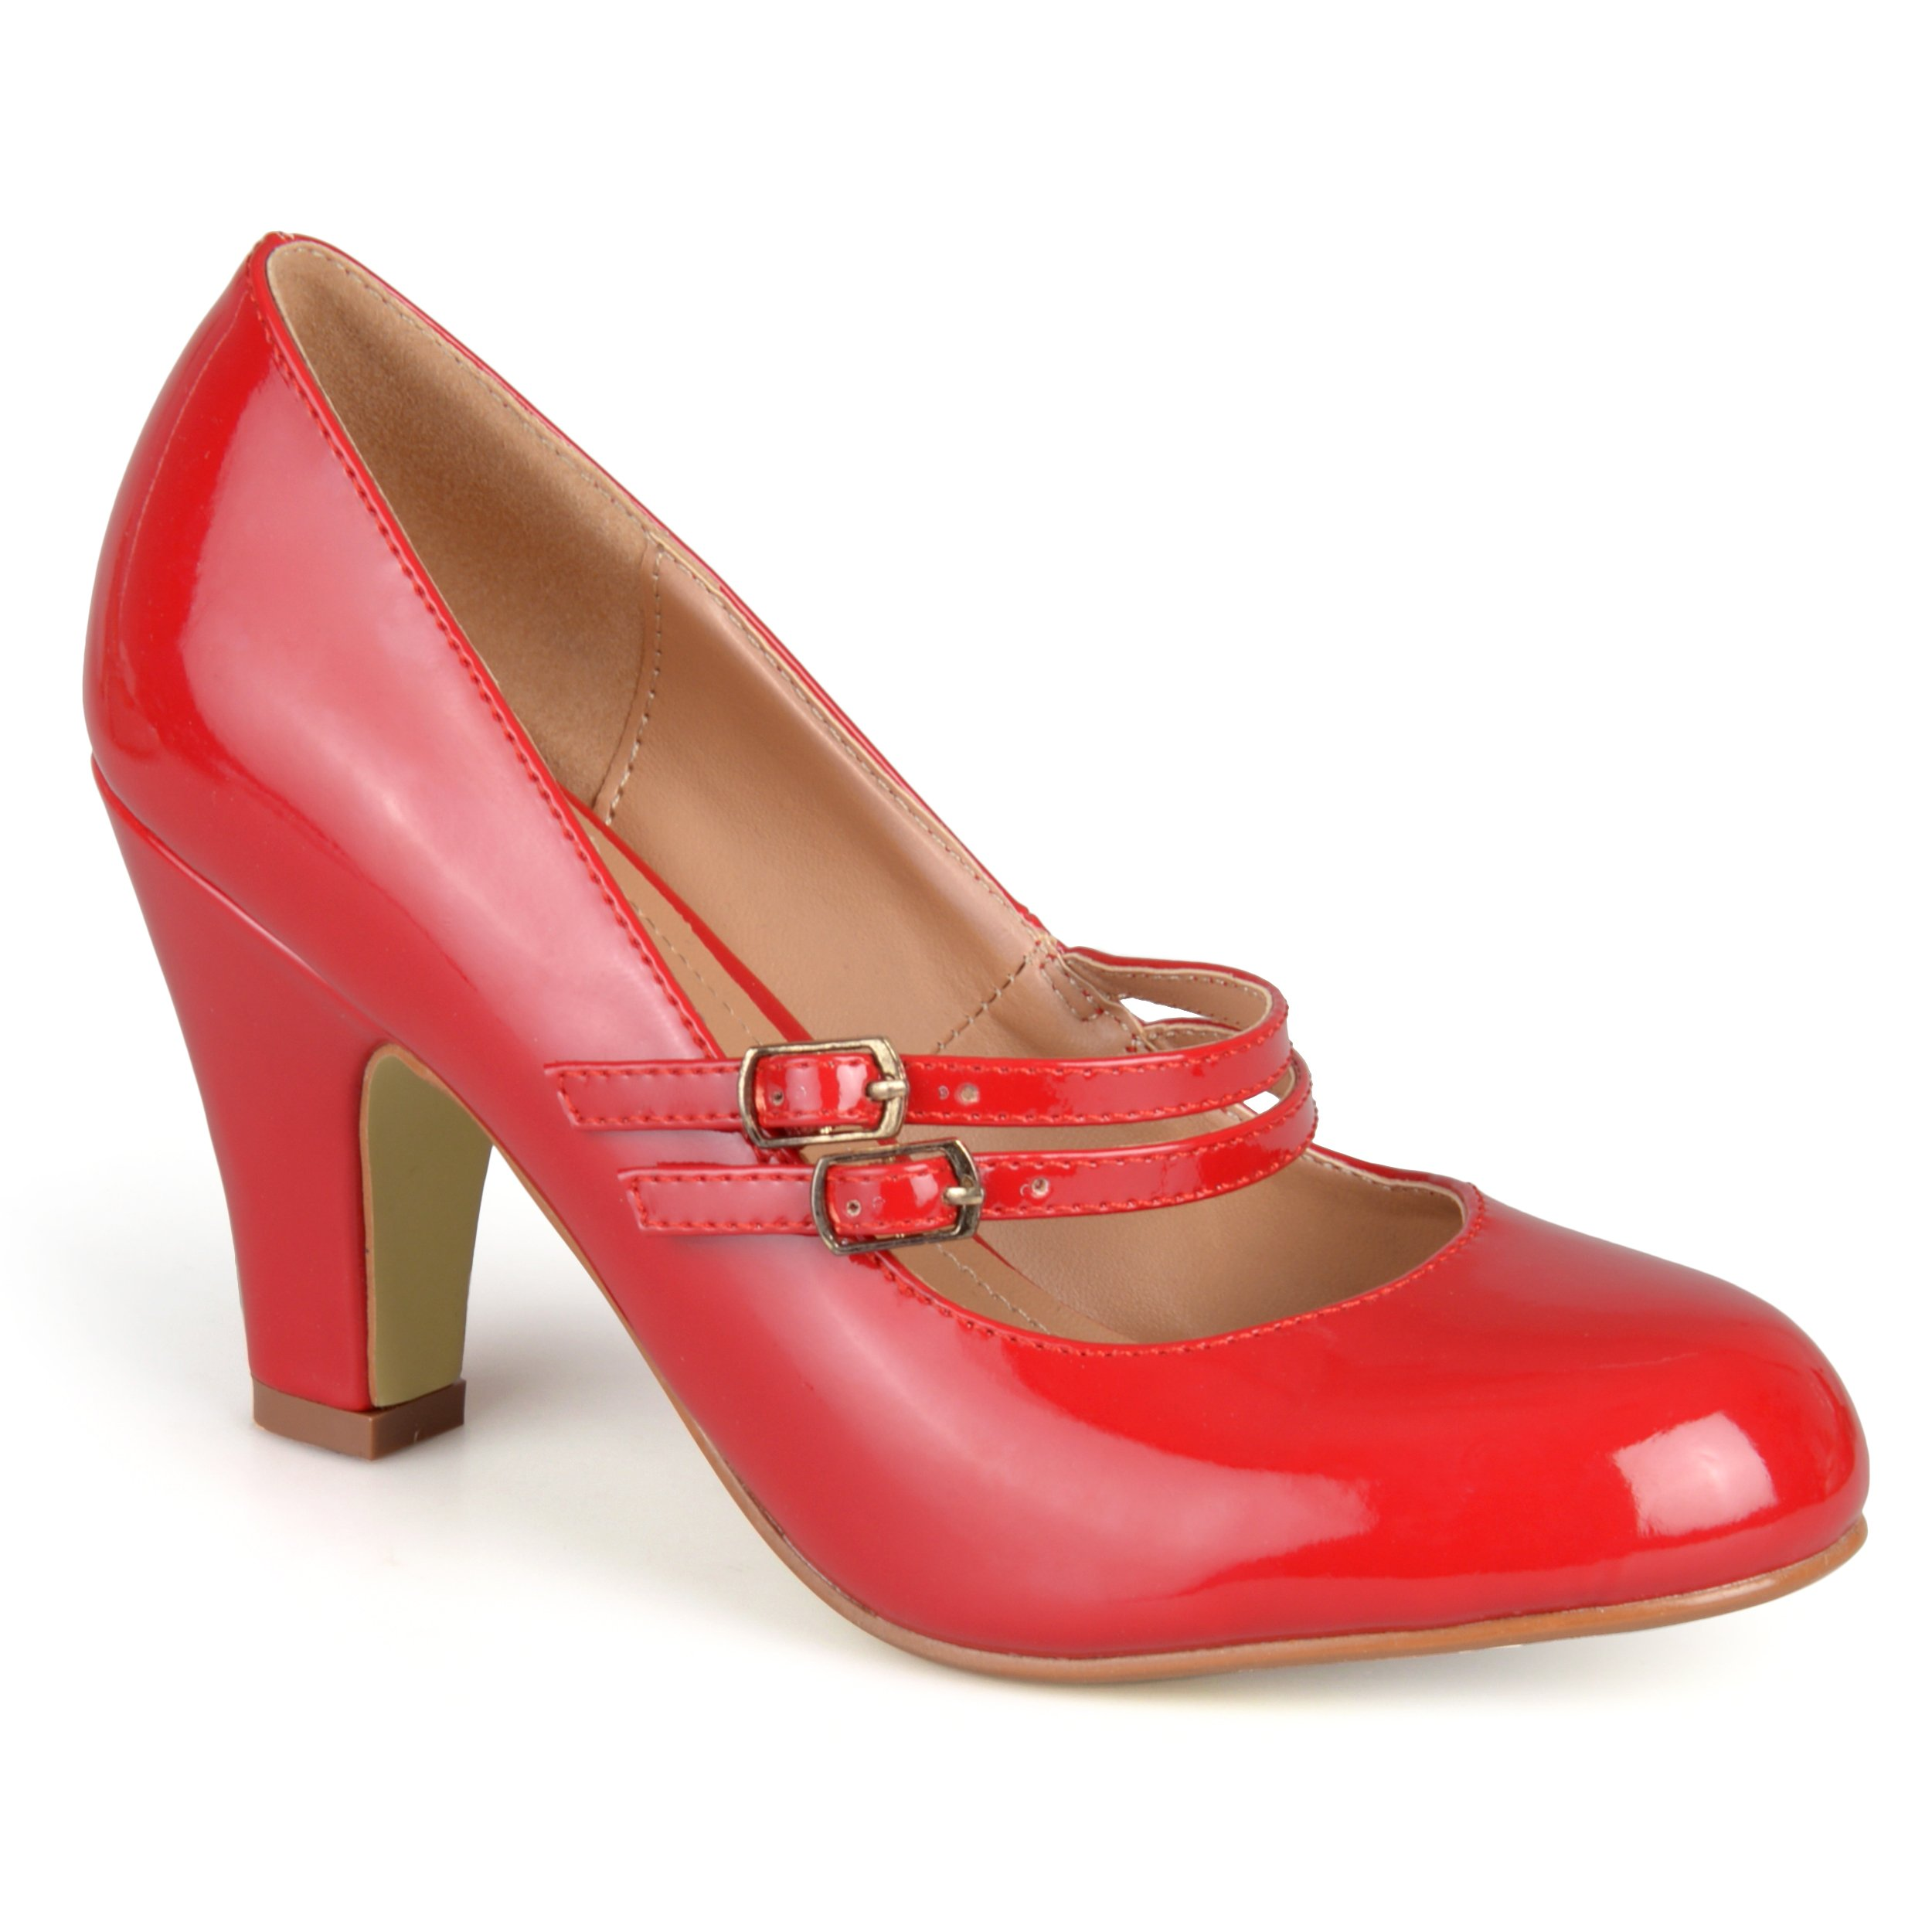 Journee Collection Womens Mary Jane Patent Faux Leather Pumps Red, 9 Regular US